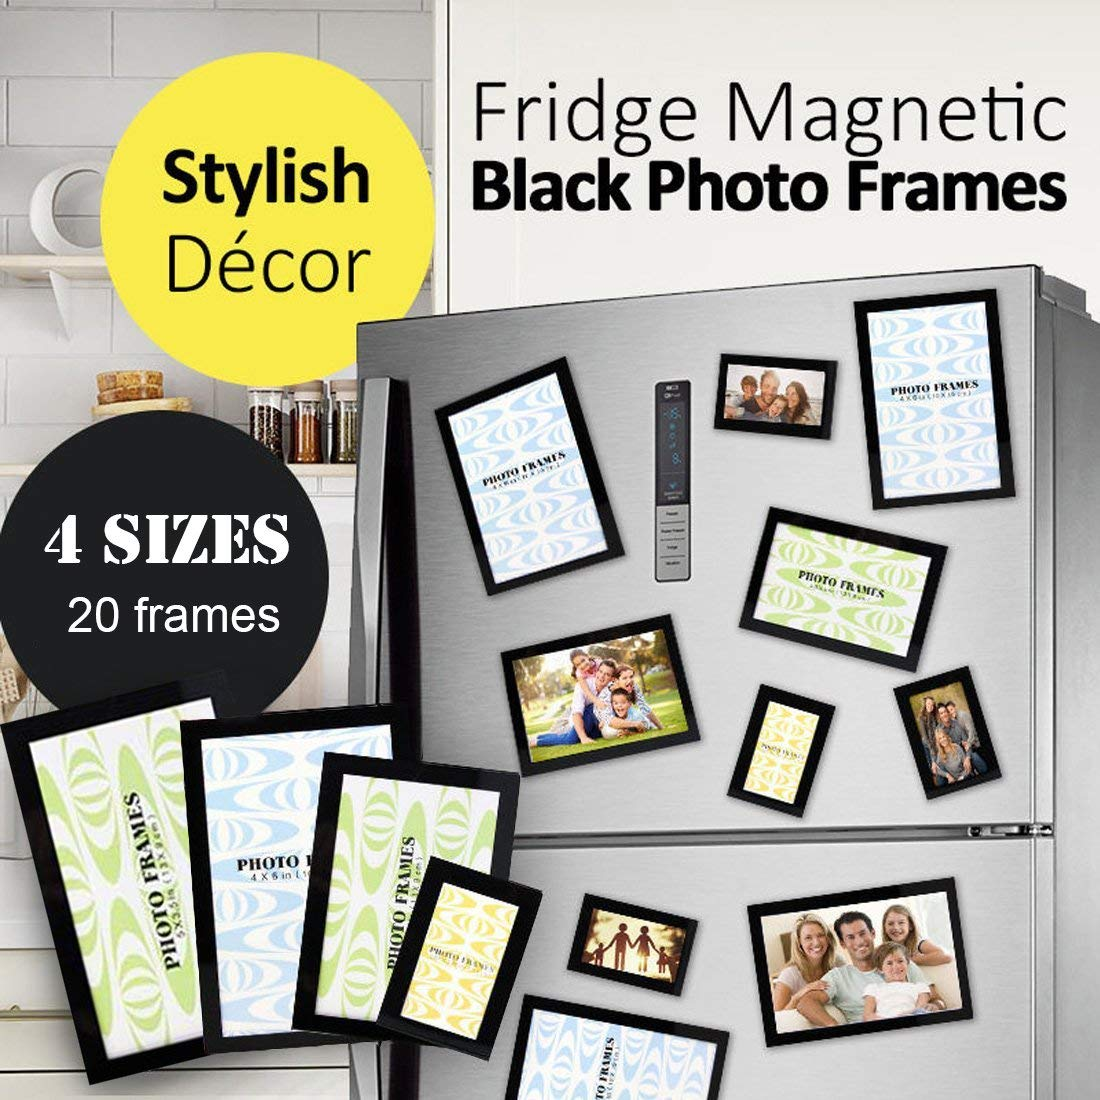 96d108d3f37c Magnetic Photo Picture Frames and Refrigerator Magnets